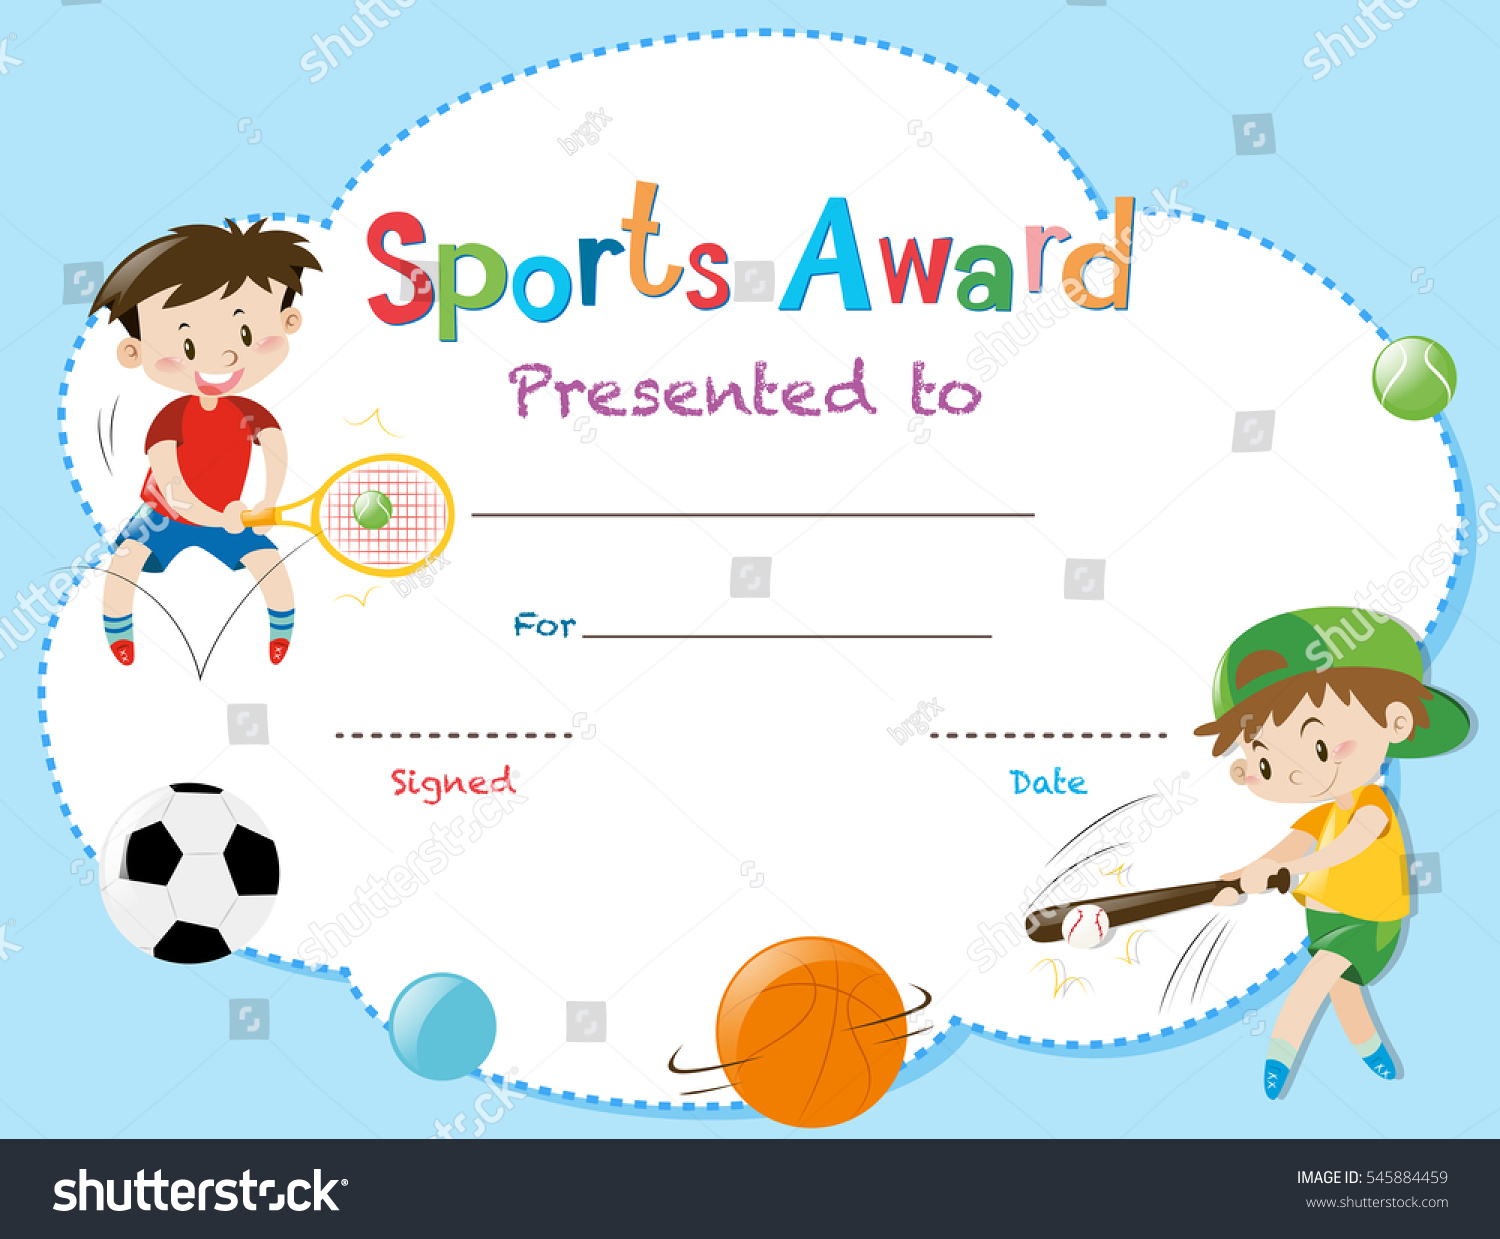 Certificate template two boys playing sports stock vector certificate template with two boys playing sports illustration alramifo Images